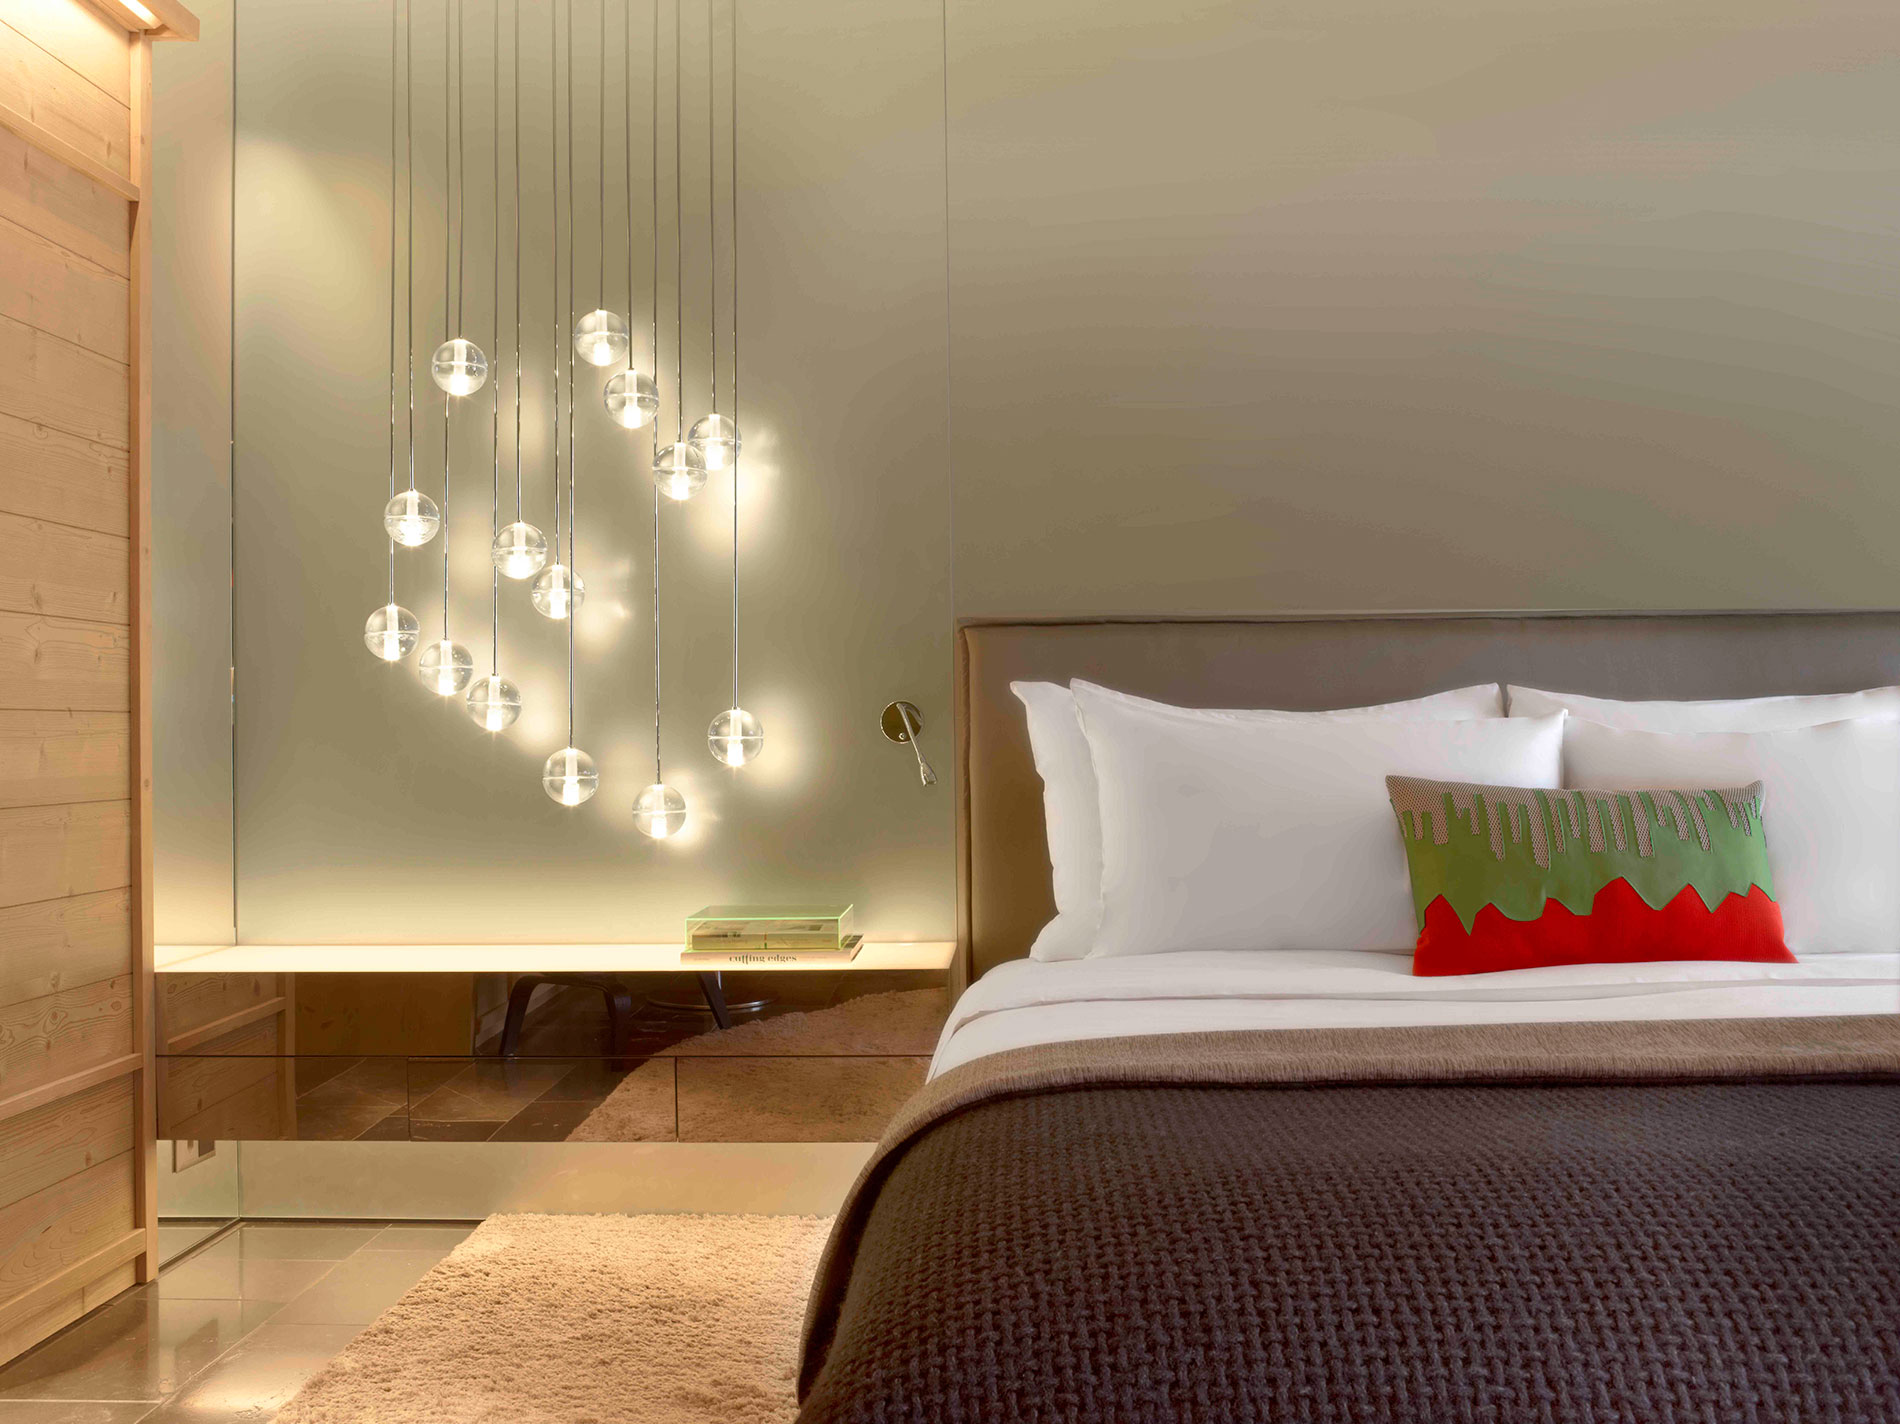 Design miami basel and w hotels worldwide announce the for Design hotels of the world